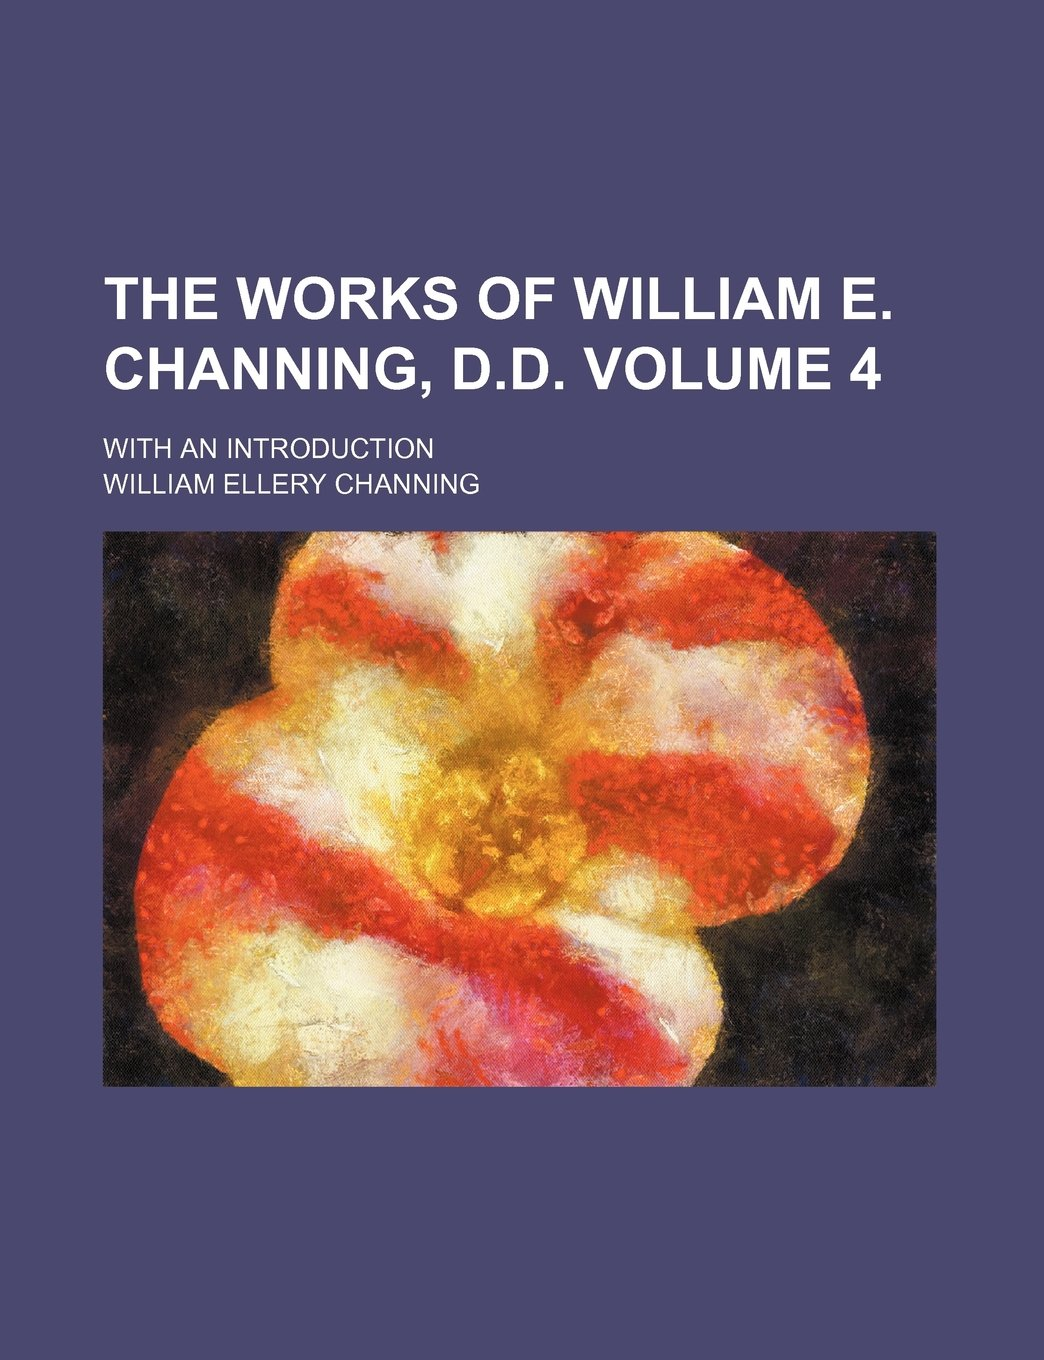 The works of William E. Channing, D.D; with an introduction Volume 4 PDF